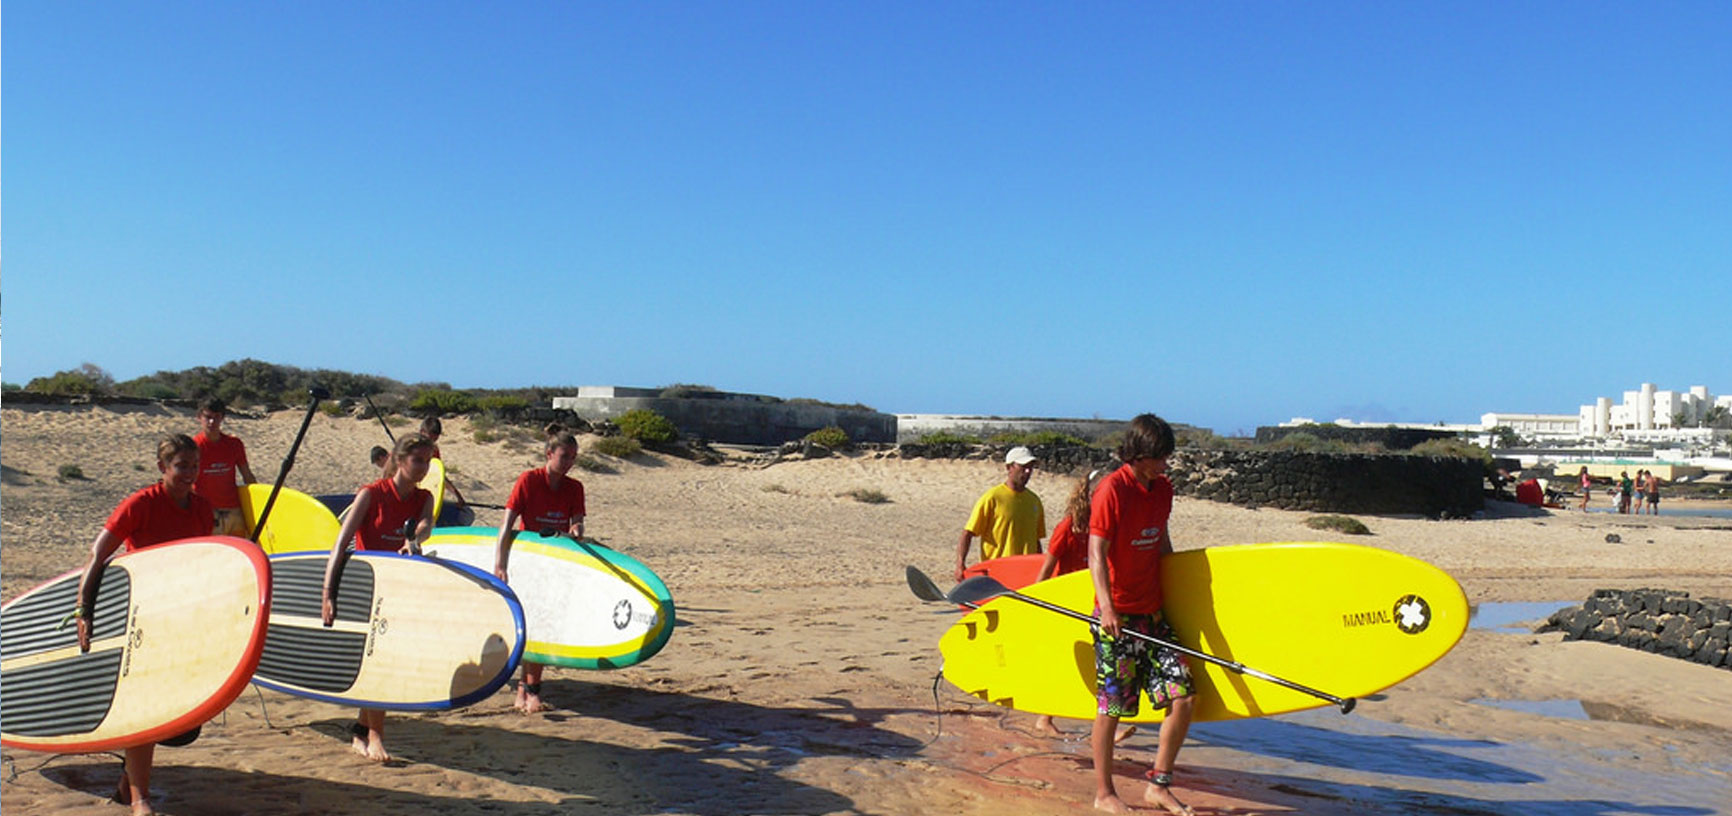 Main Image Surfing + Sup Camp in Lanzarote